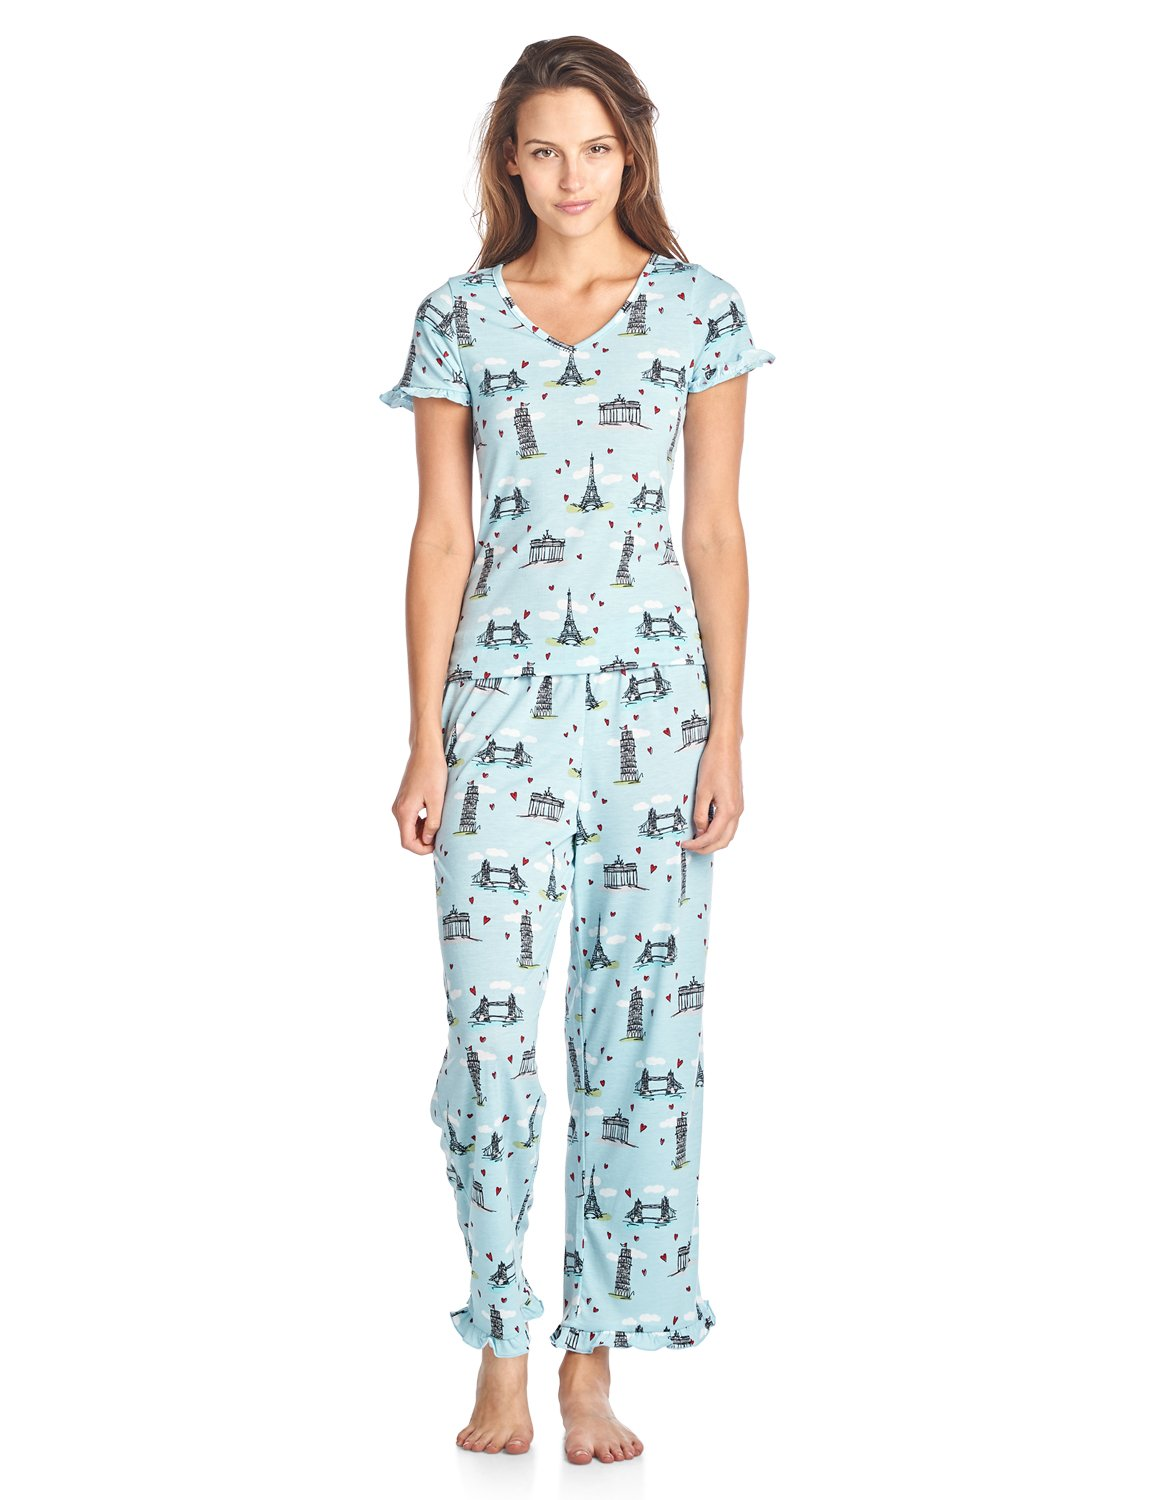 BHPJ By Bedhead Pajamas Women's Soft Knit Ruffle Short Sleeve Capri Pajama Set - Lt. Blue Sketched Building - X-Large